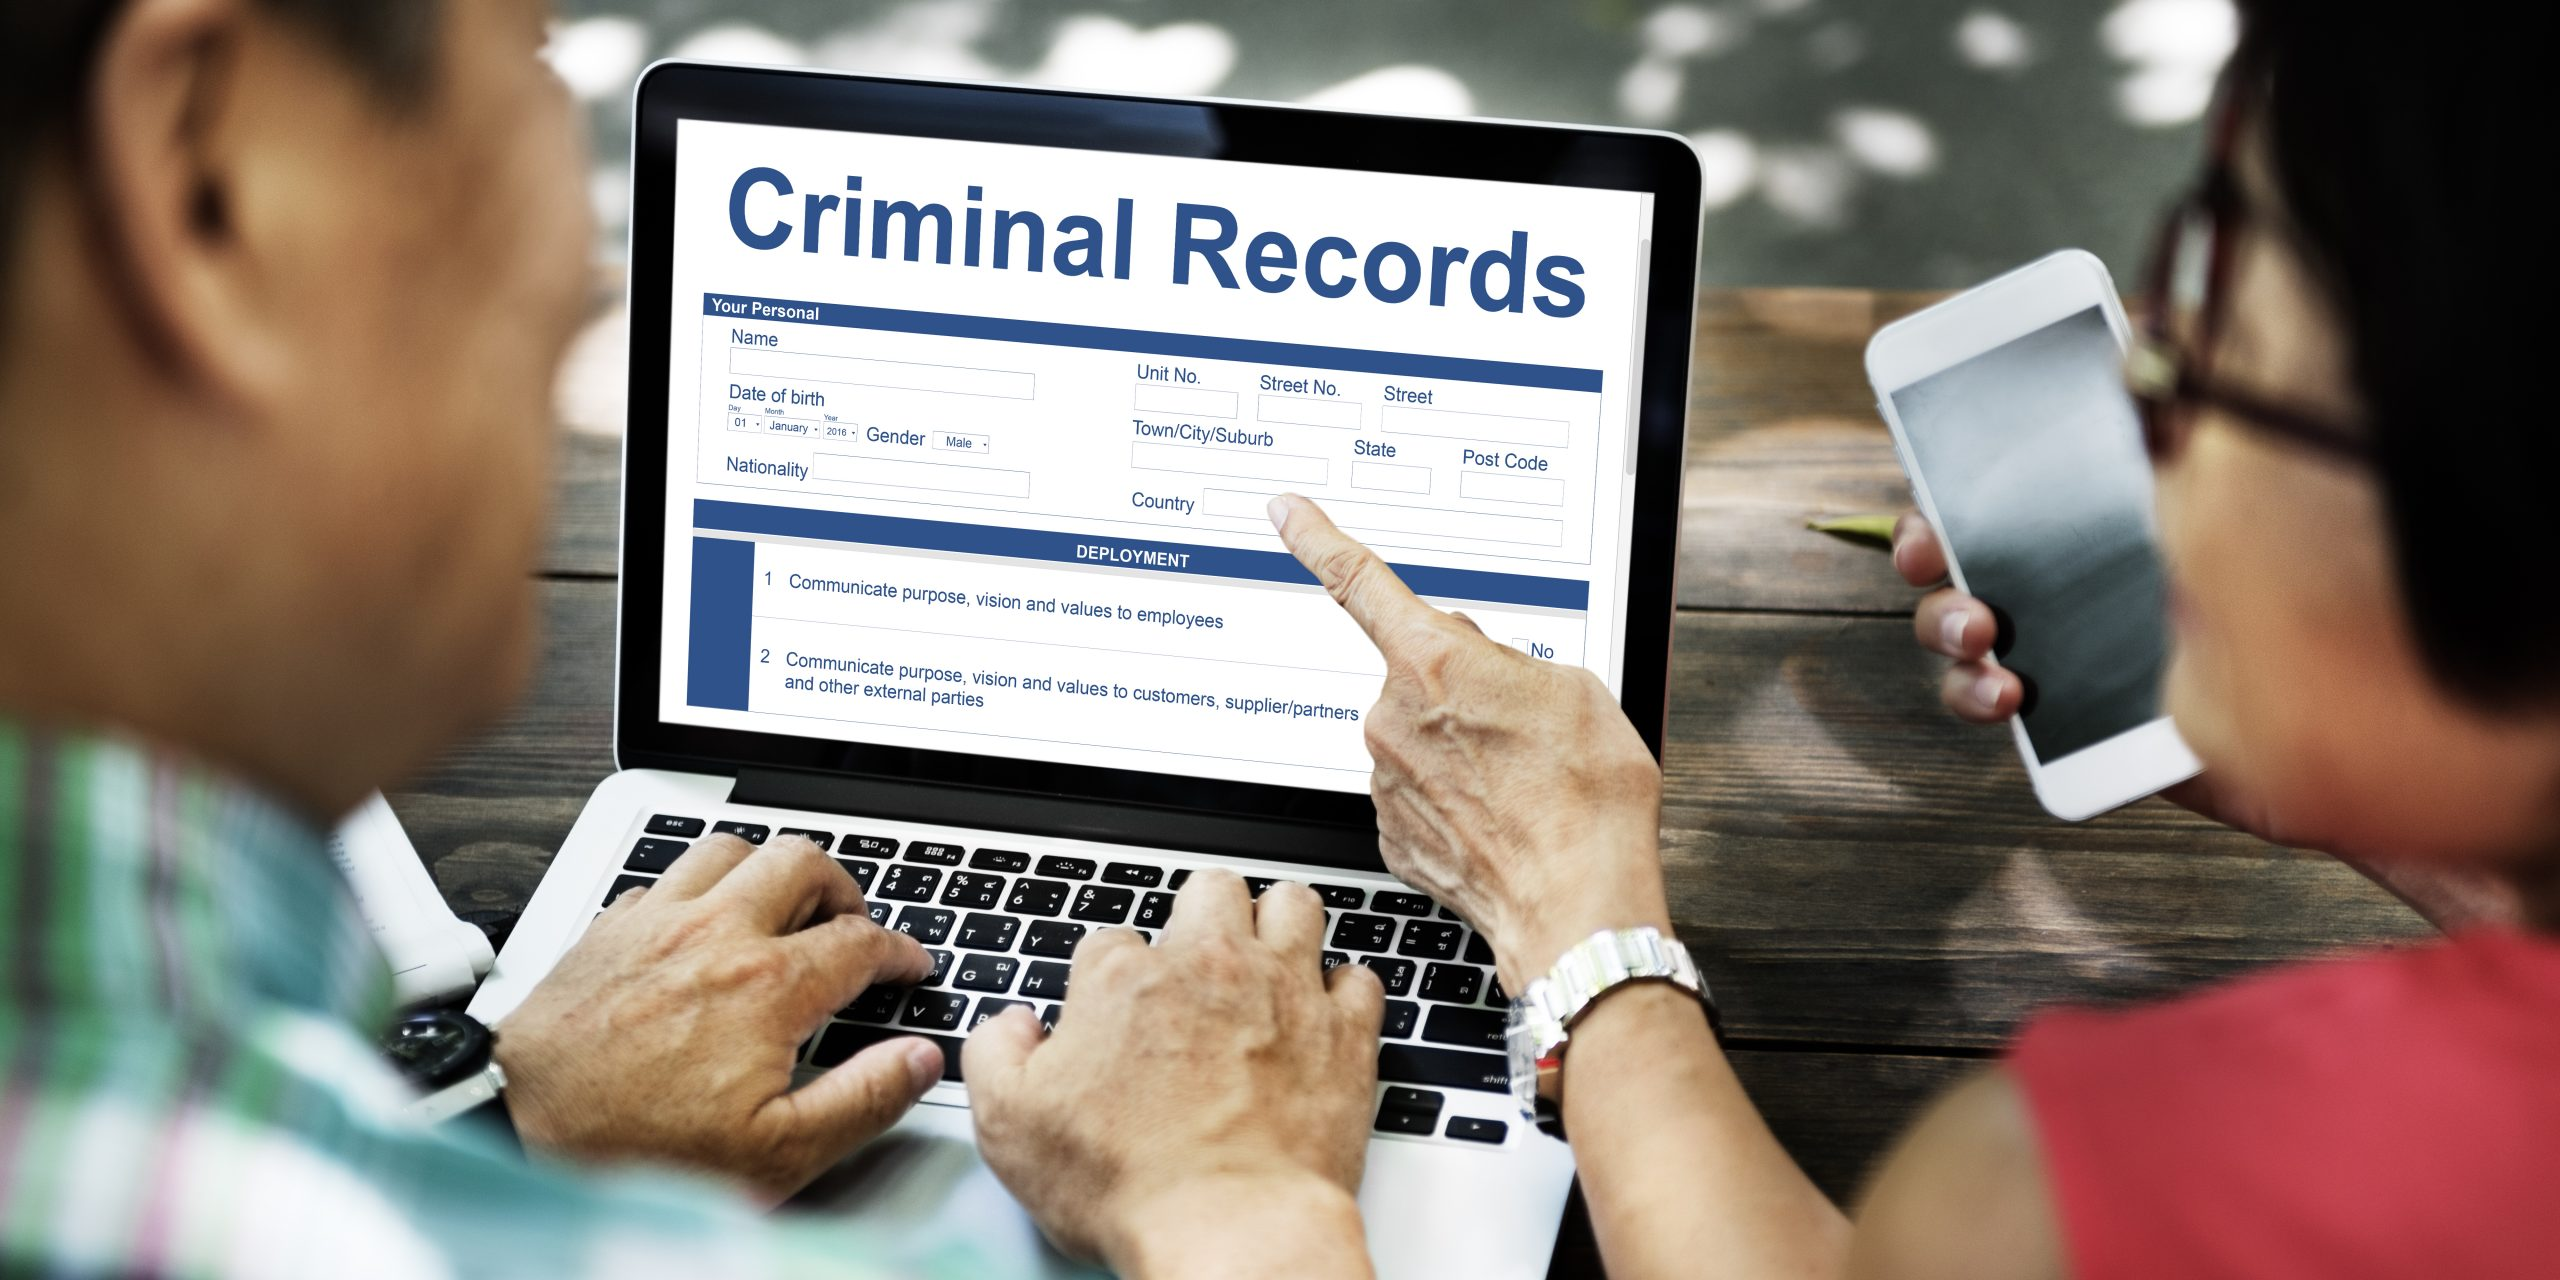 How long does a DWI stay on your criminal record in Minnesota? The answer may surprise you